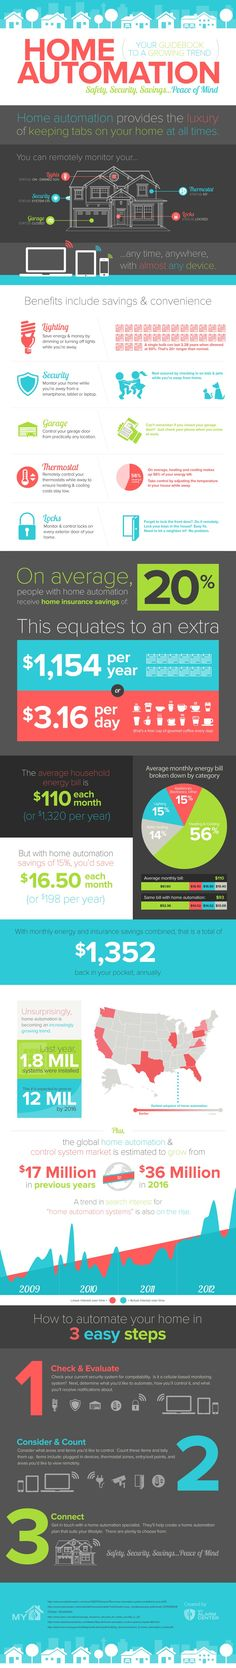 Home Automation Benefits (Infographic)